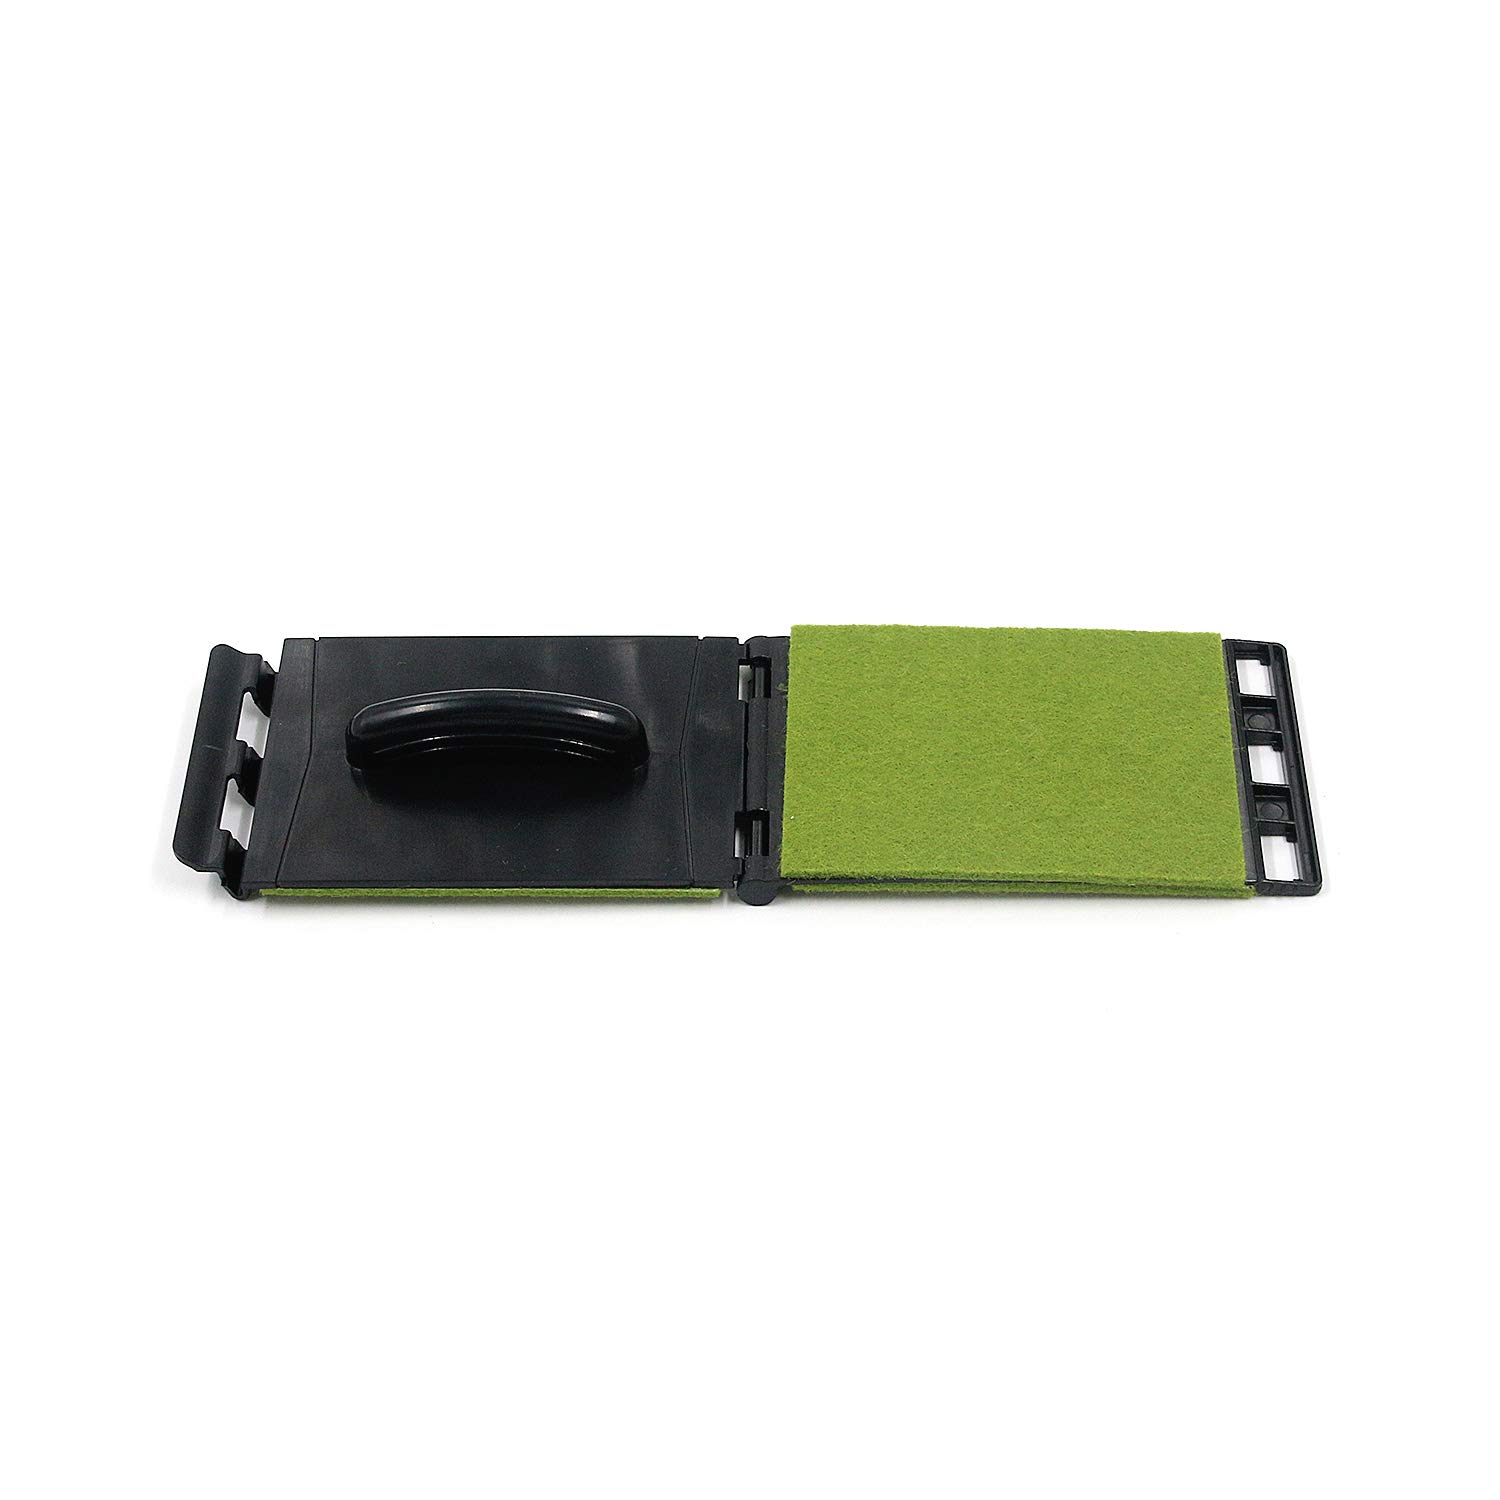 Compact folding stand GREENPRO 30015 with a soft seat for piano Additional release